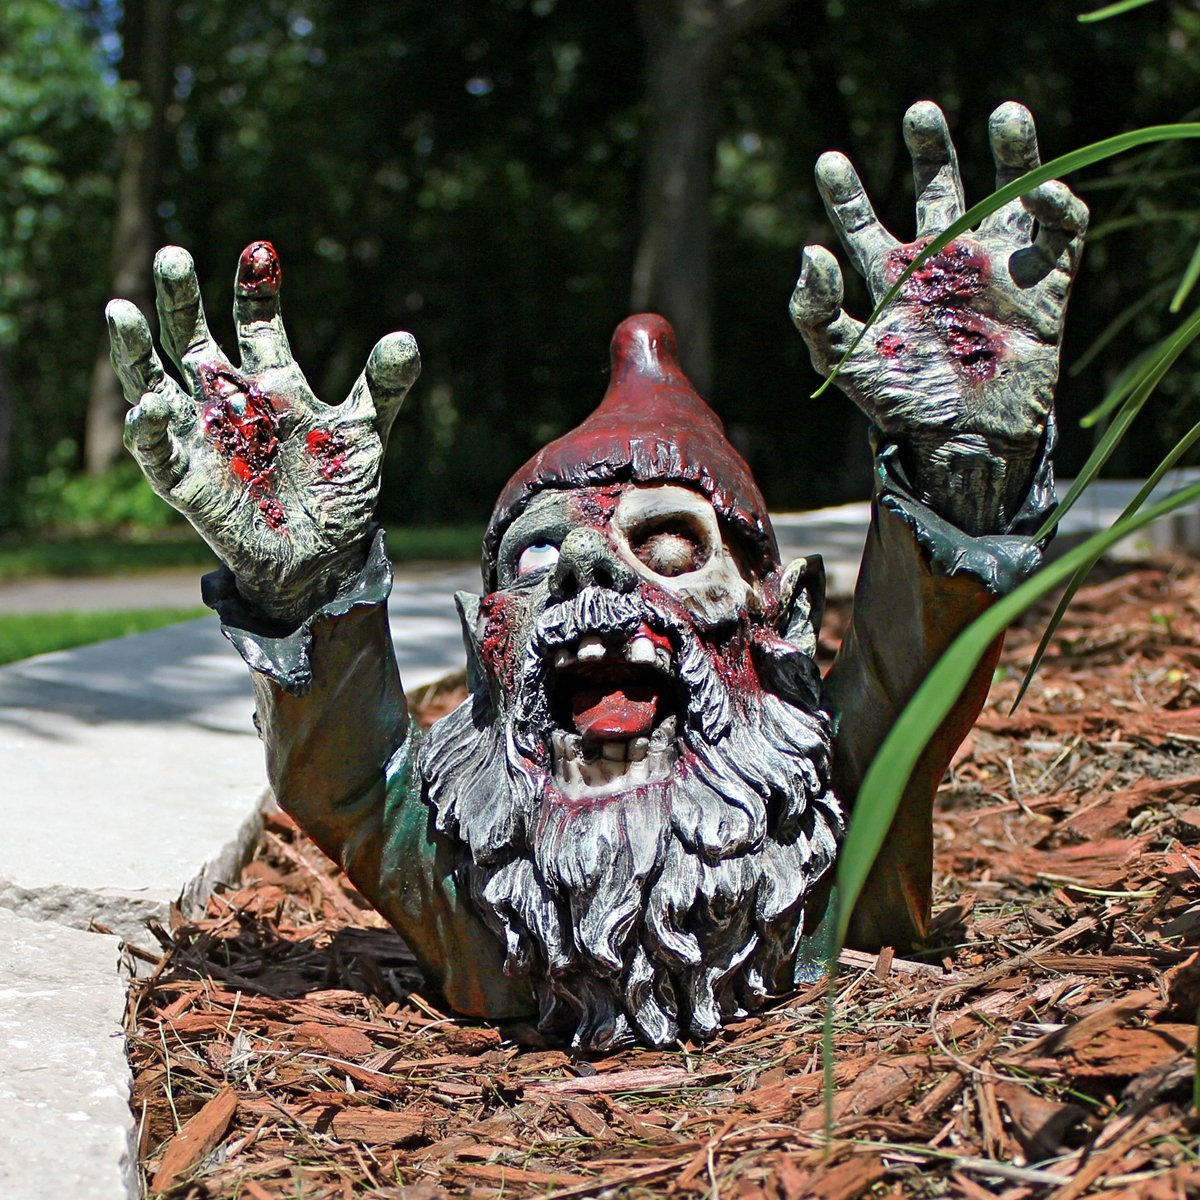 Gnome Garden: Got Cash... Buy This! The Unique Online Mall